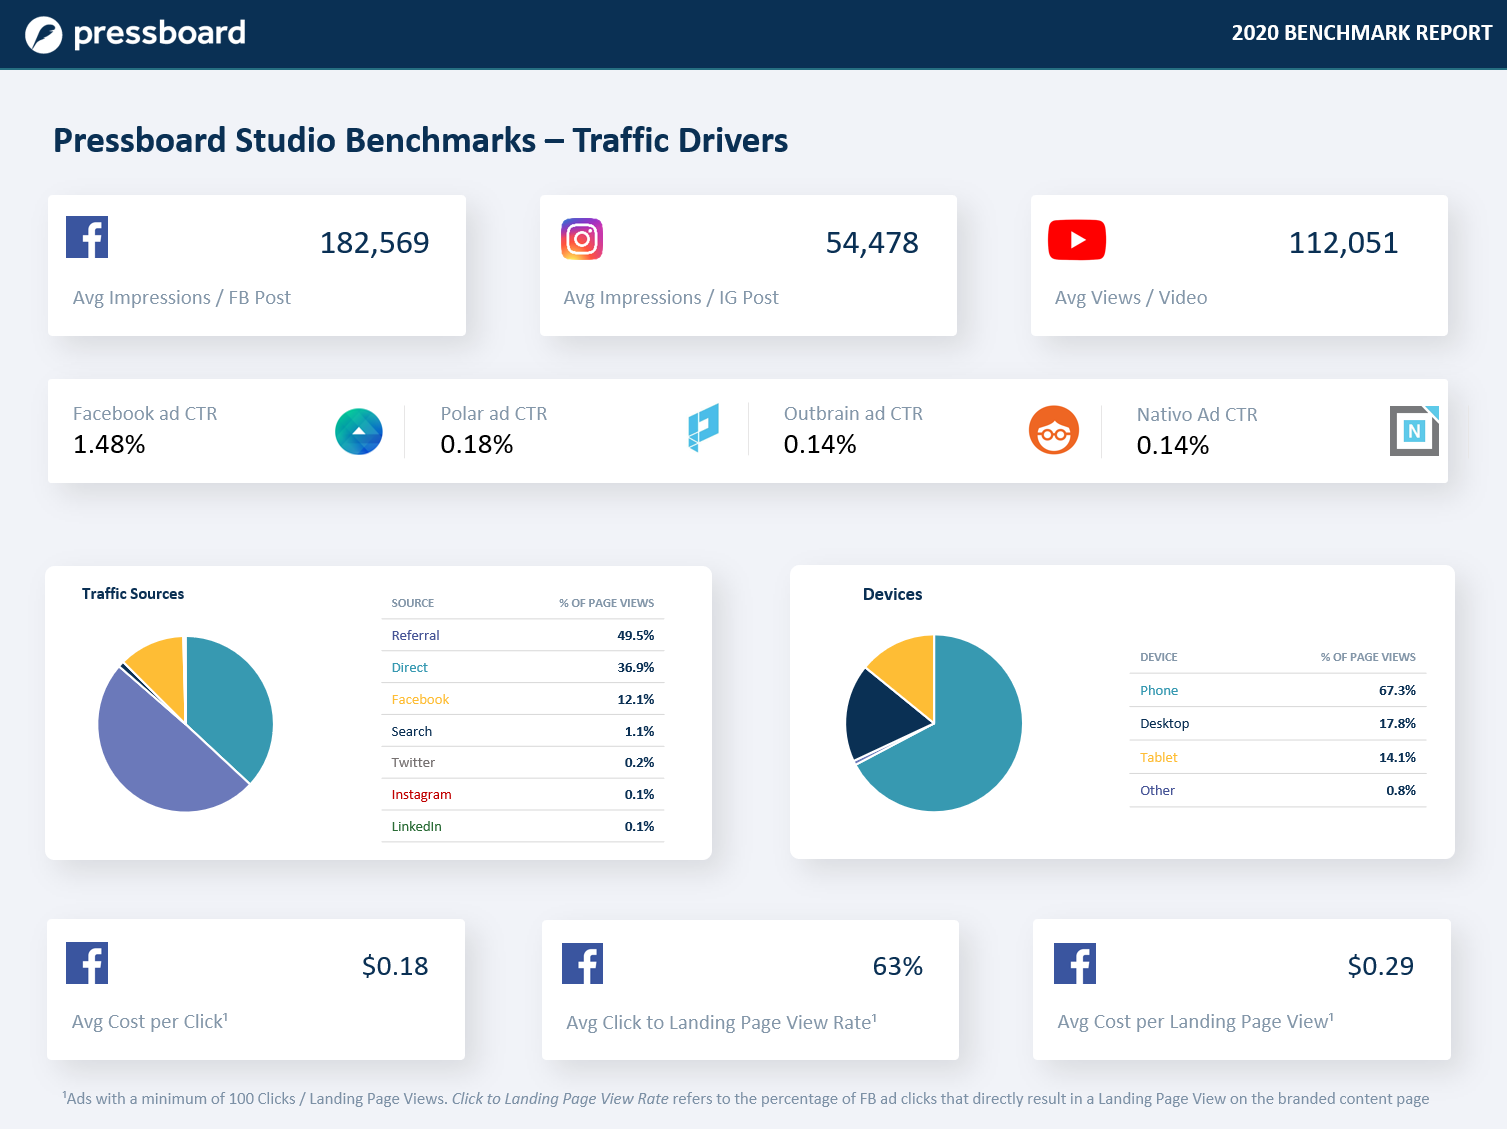 Pressboard Benchmark Report - 2020 - Traffic Drivers page